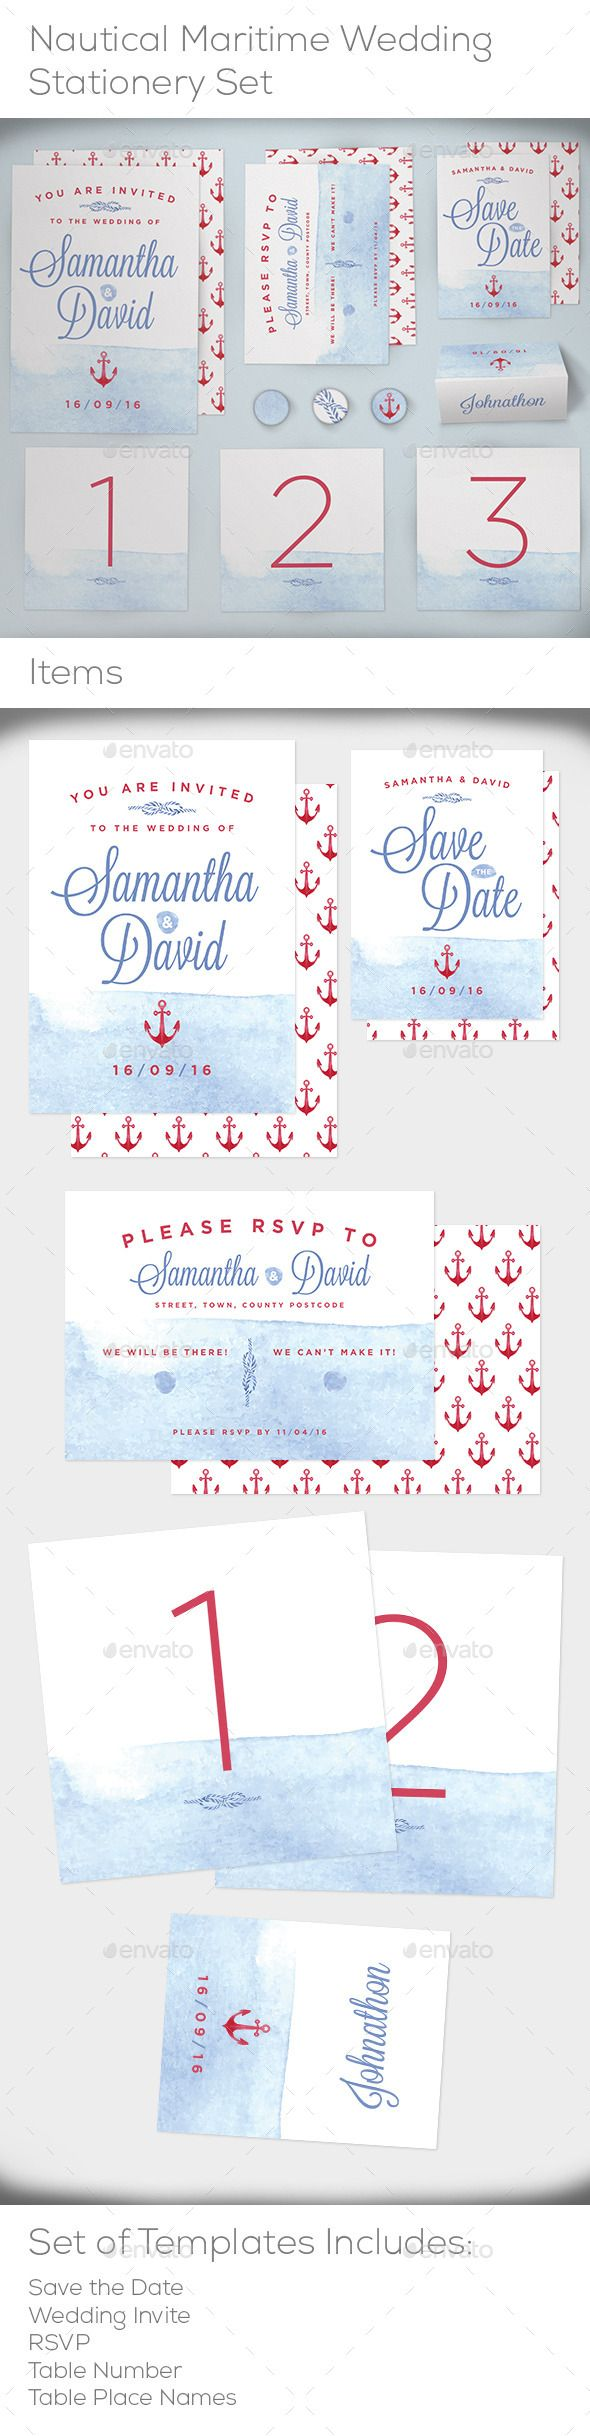 Nautical Maritime Wedding Stationery Set Templates #design Download: http://graphicriver.net/item/nautical-maritime-wedding-stationery-set/11628661?ref=ksioks